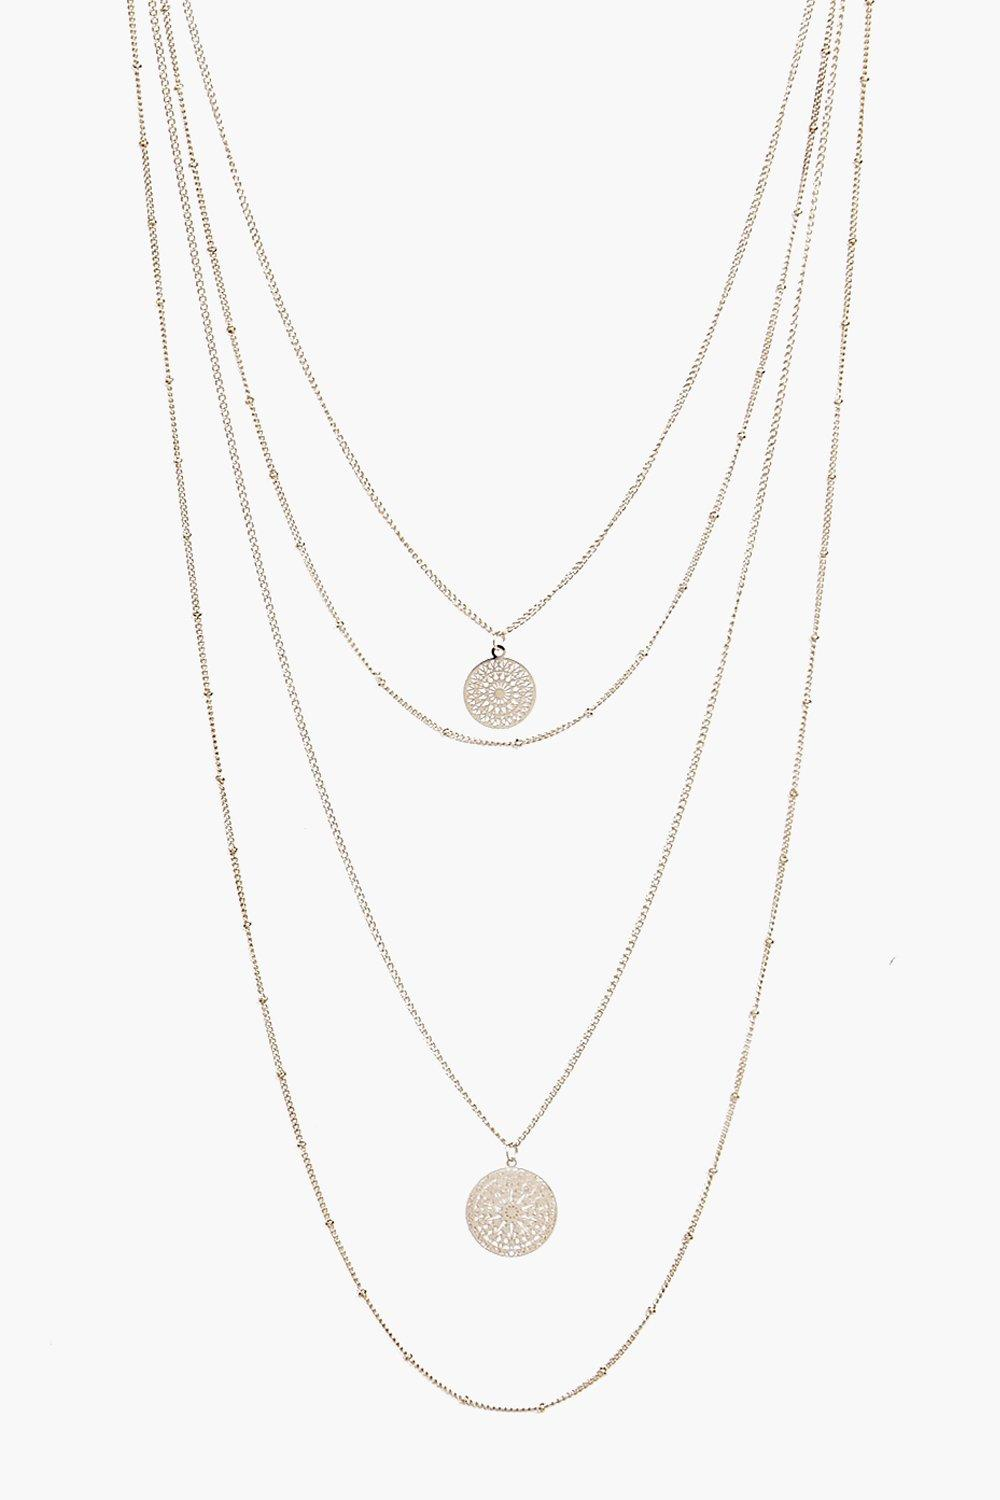 Layla Skinny Coin Necklace Pack